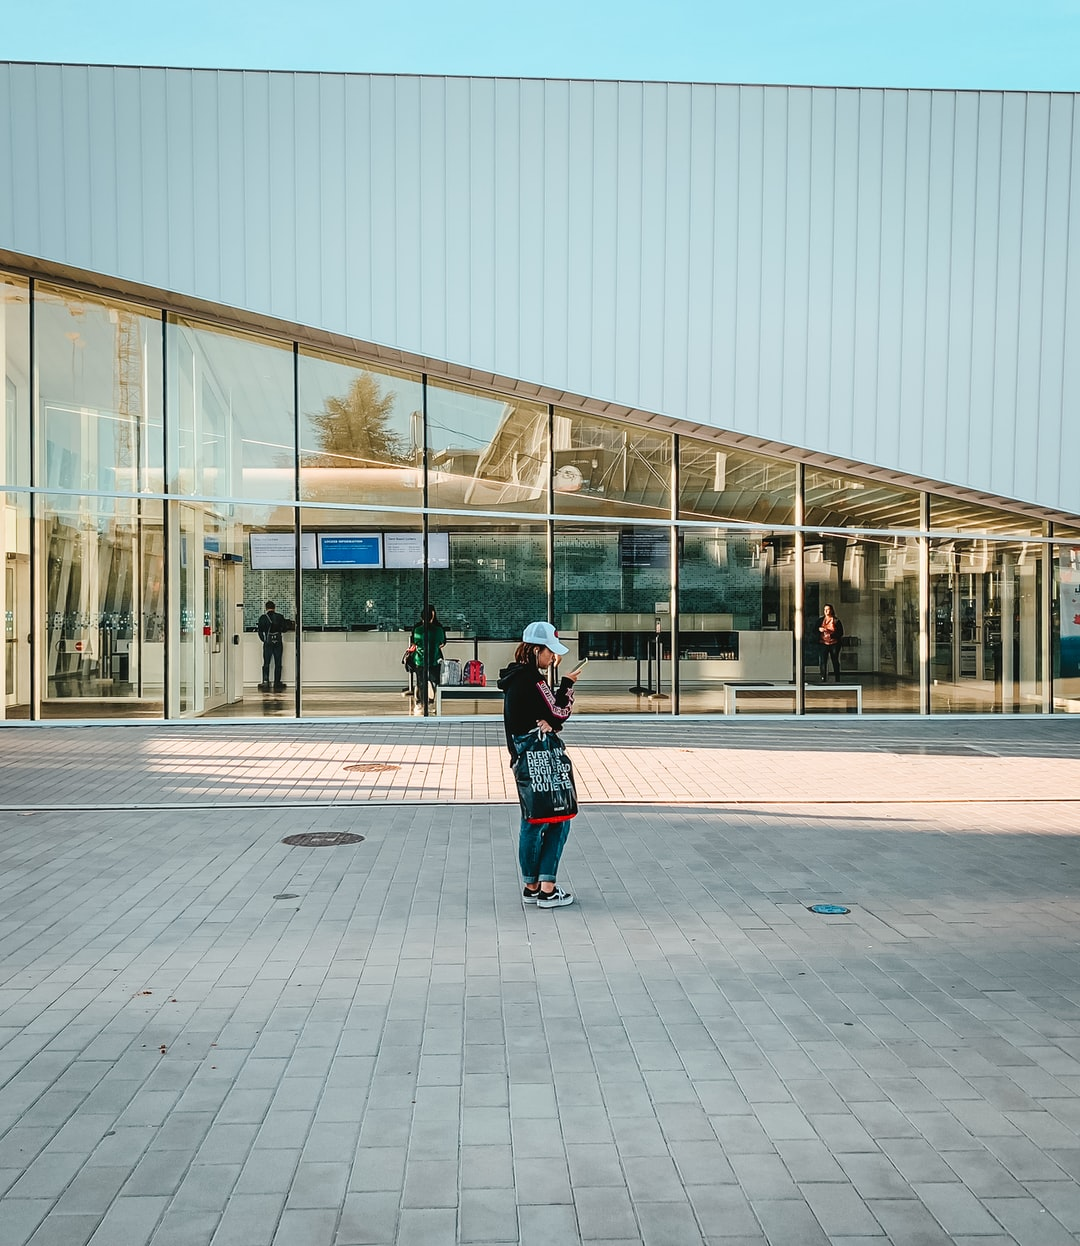 A shot of a girl looking at her phone, standing by UBC's Aquatic Center building